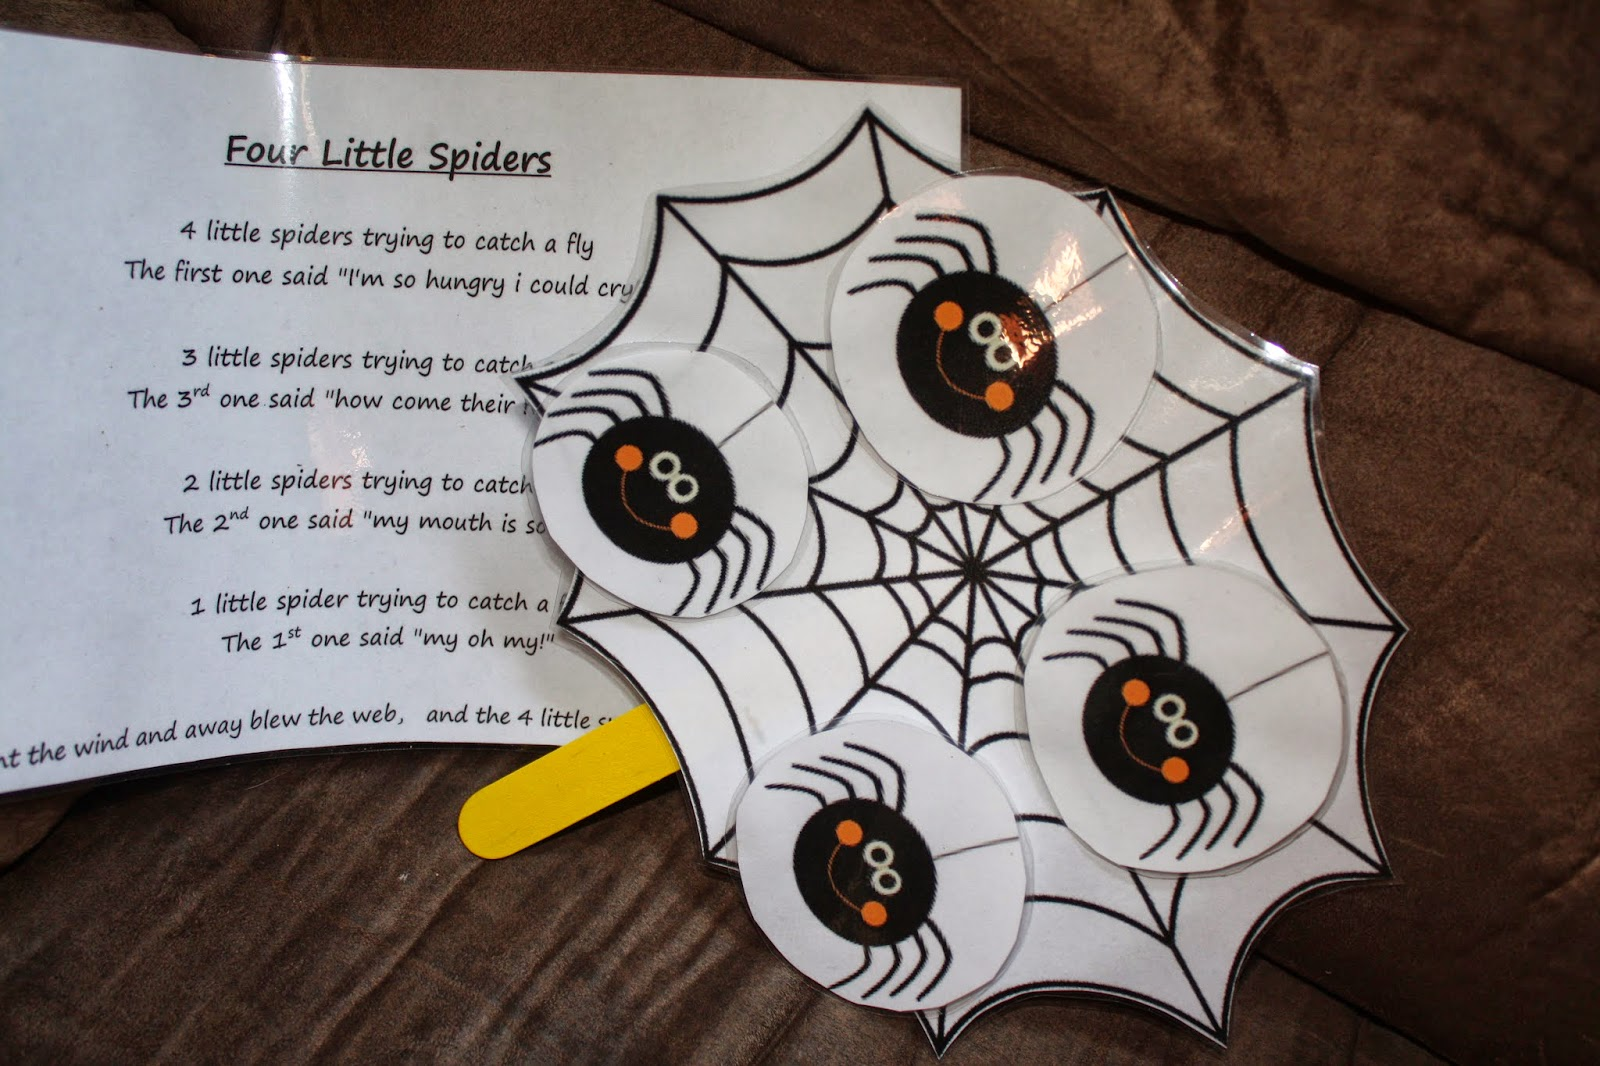 Annie S Adventures In Homeschooling 4 Little Spiders Printable Circle Time Activity